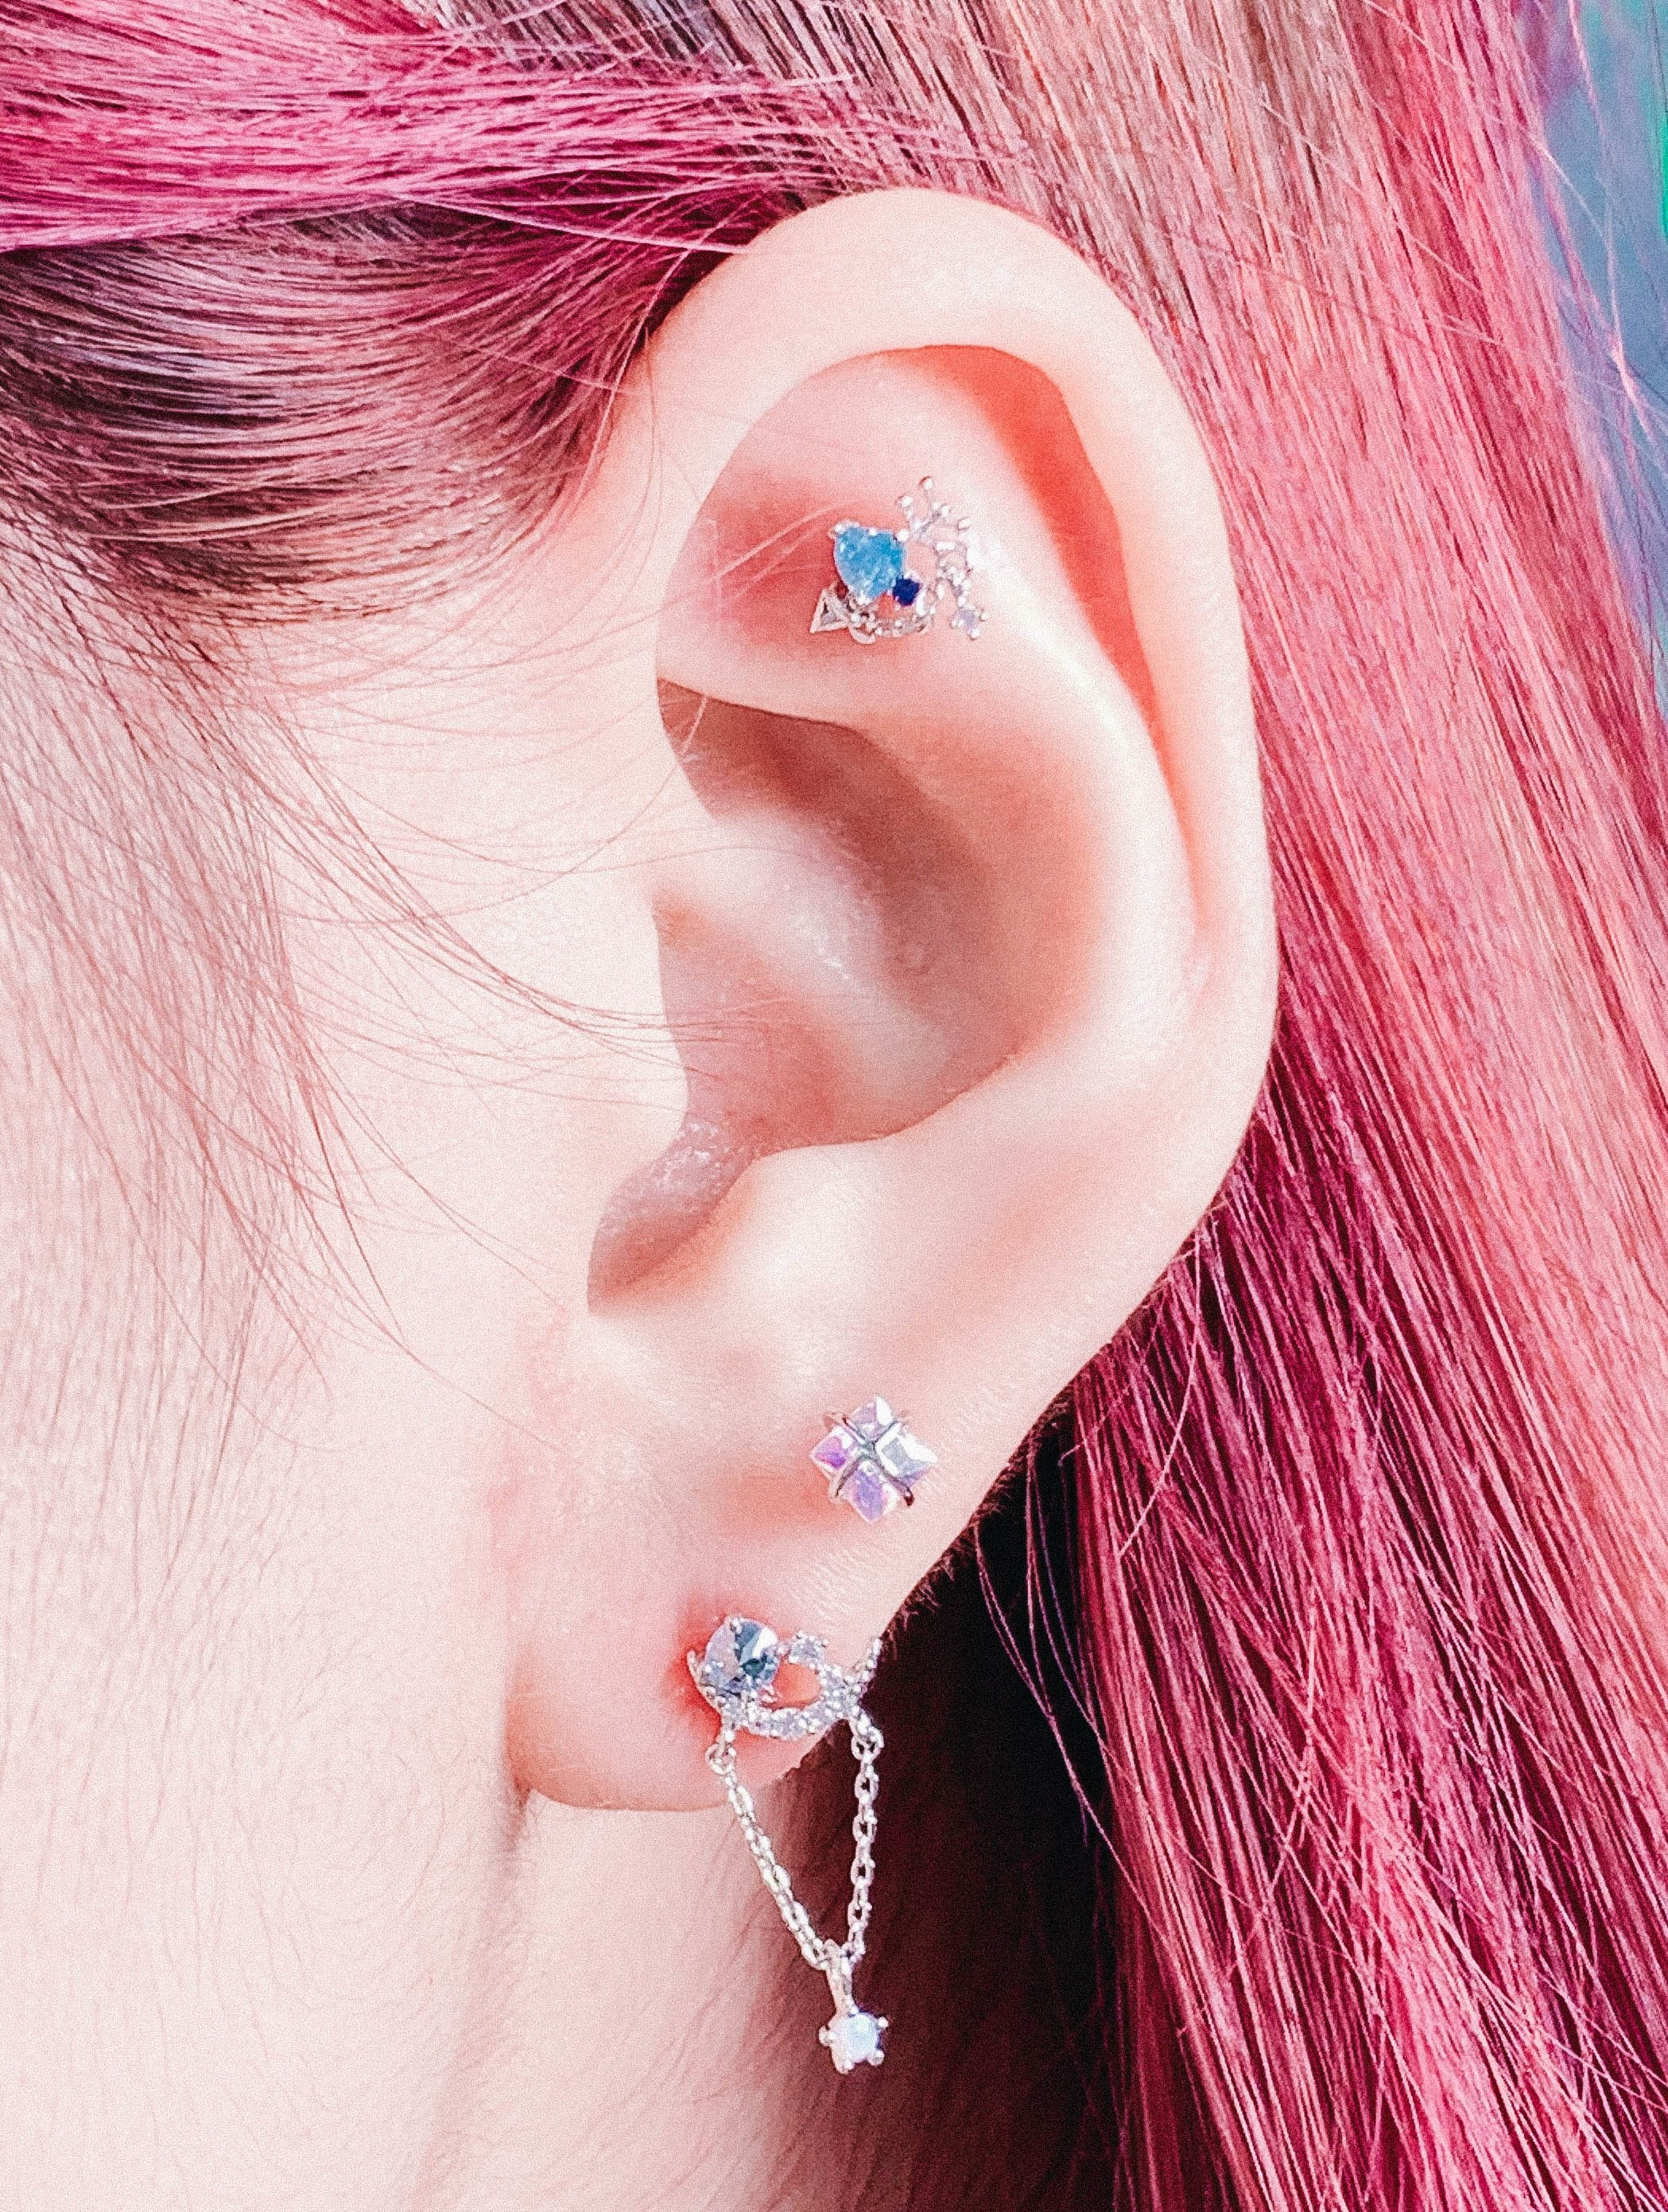 Square Sparkling (ピアス/ピアッシング) Piercing anything else